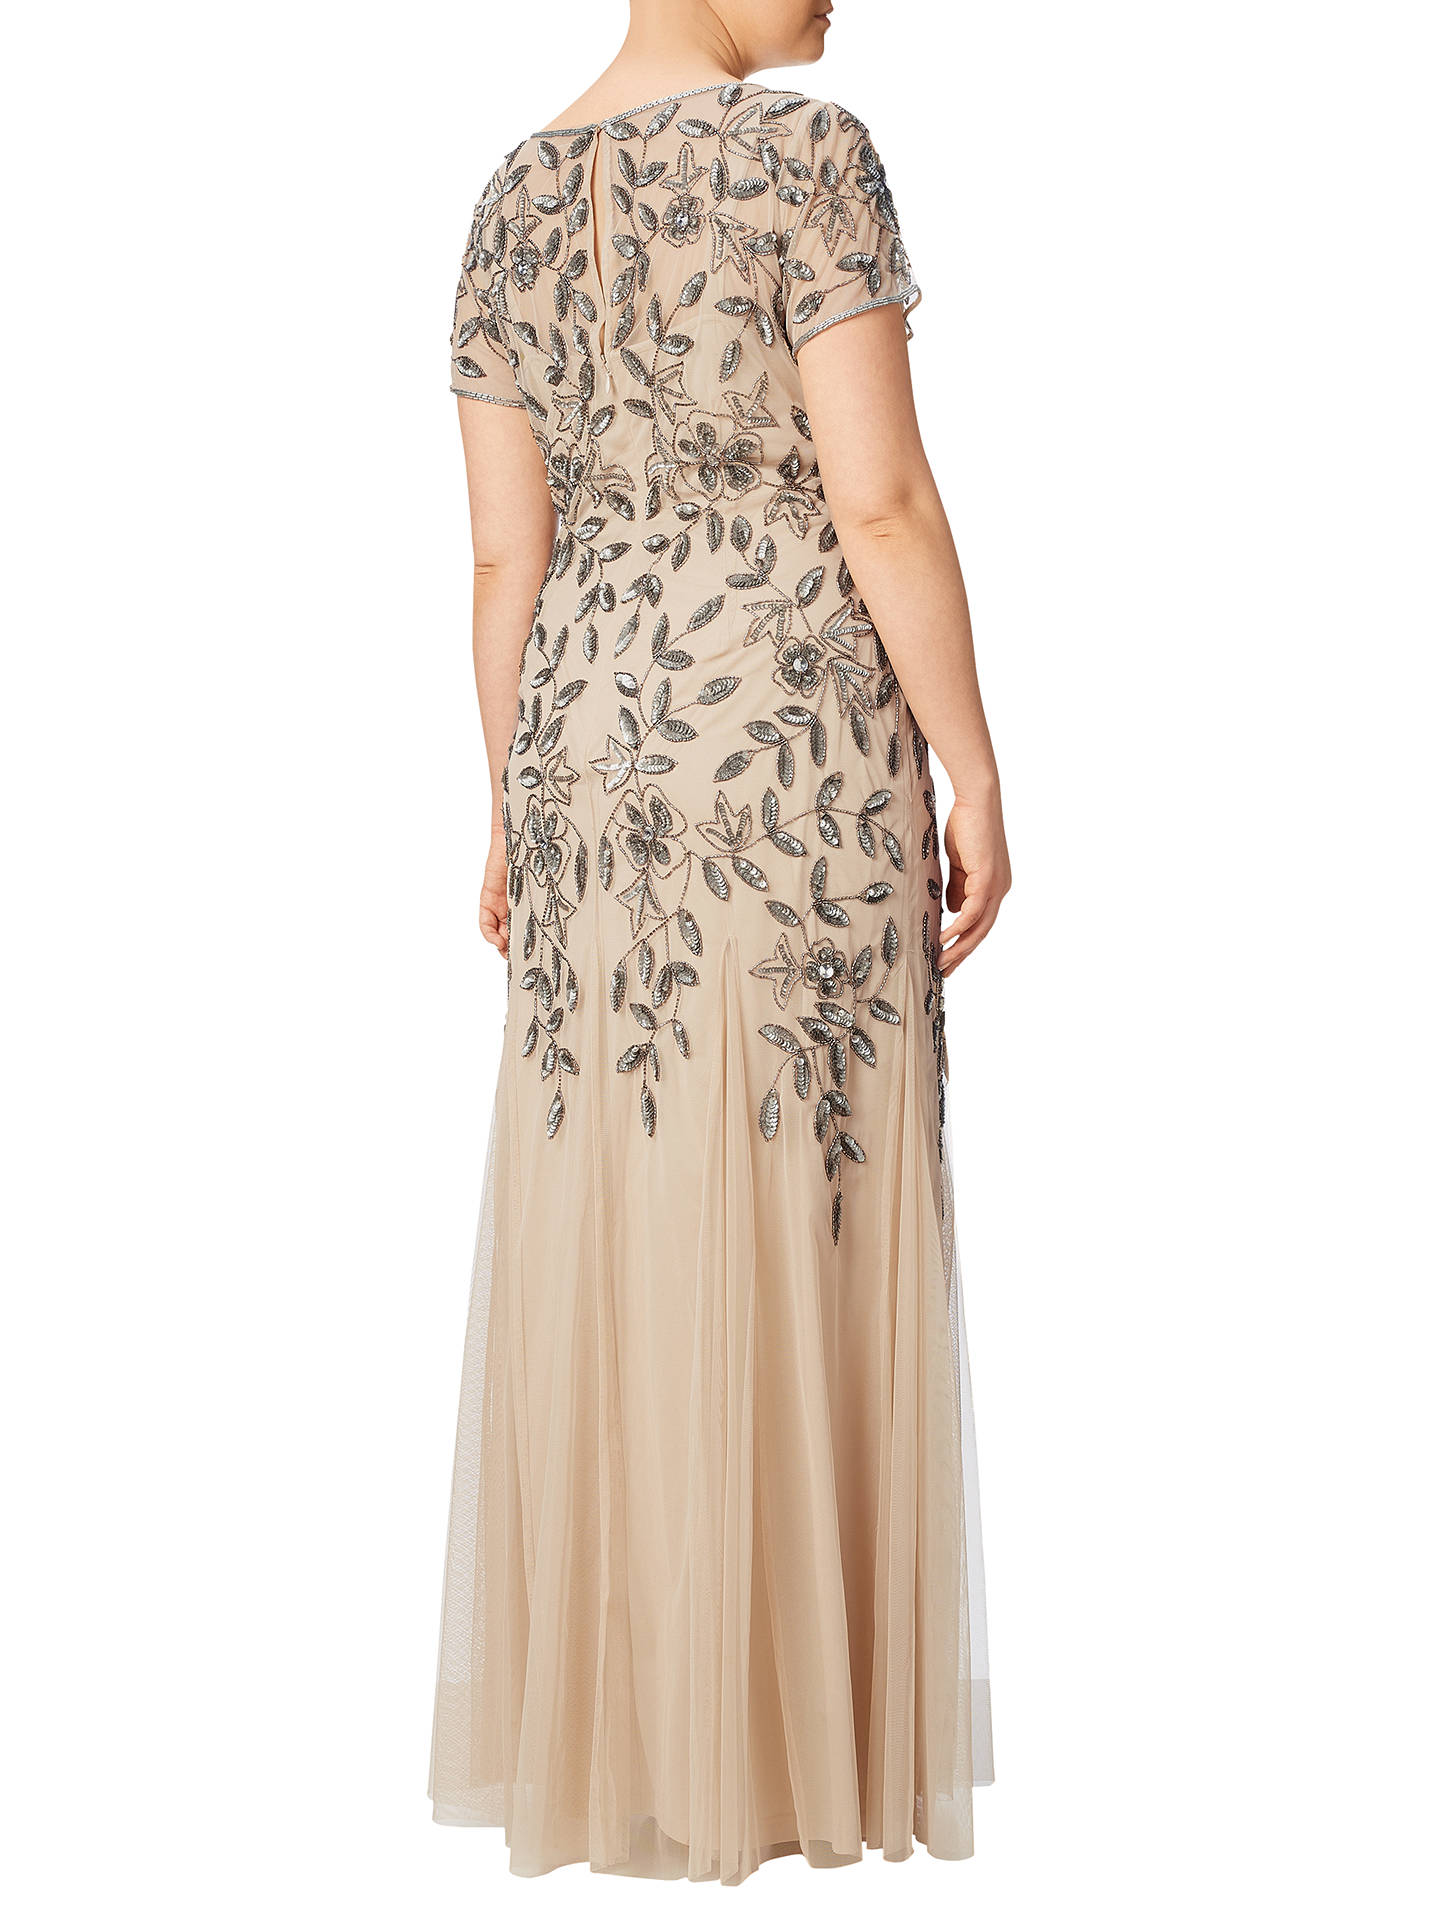 cae089f619a7 ... Buy Adrianna Papell Plus Size Floral Beaded Godet Gown, Taupe/Pink, 18  Online ...